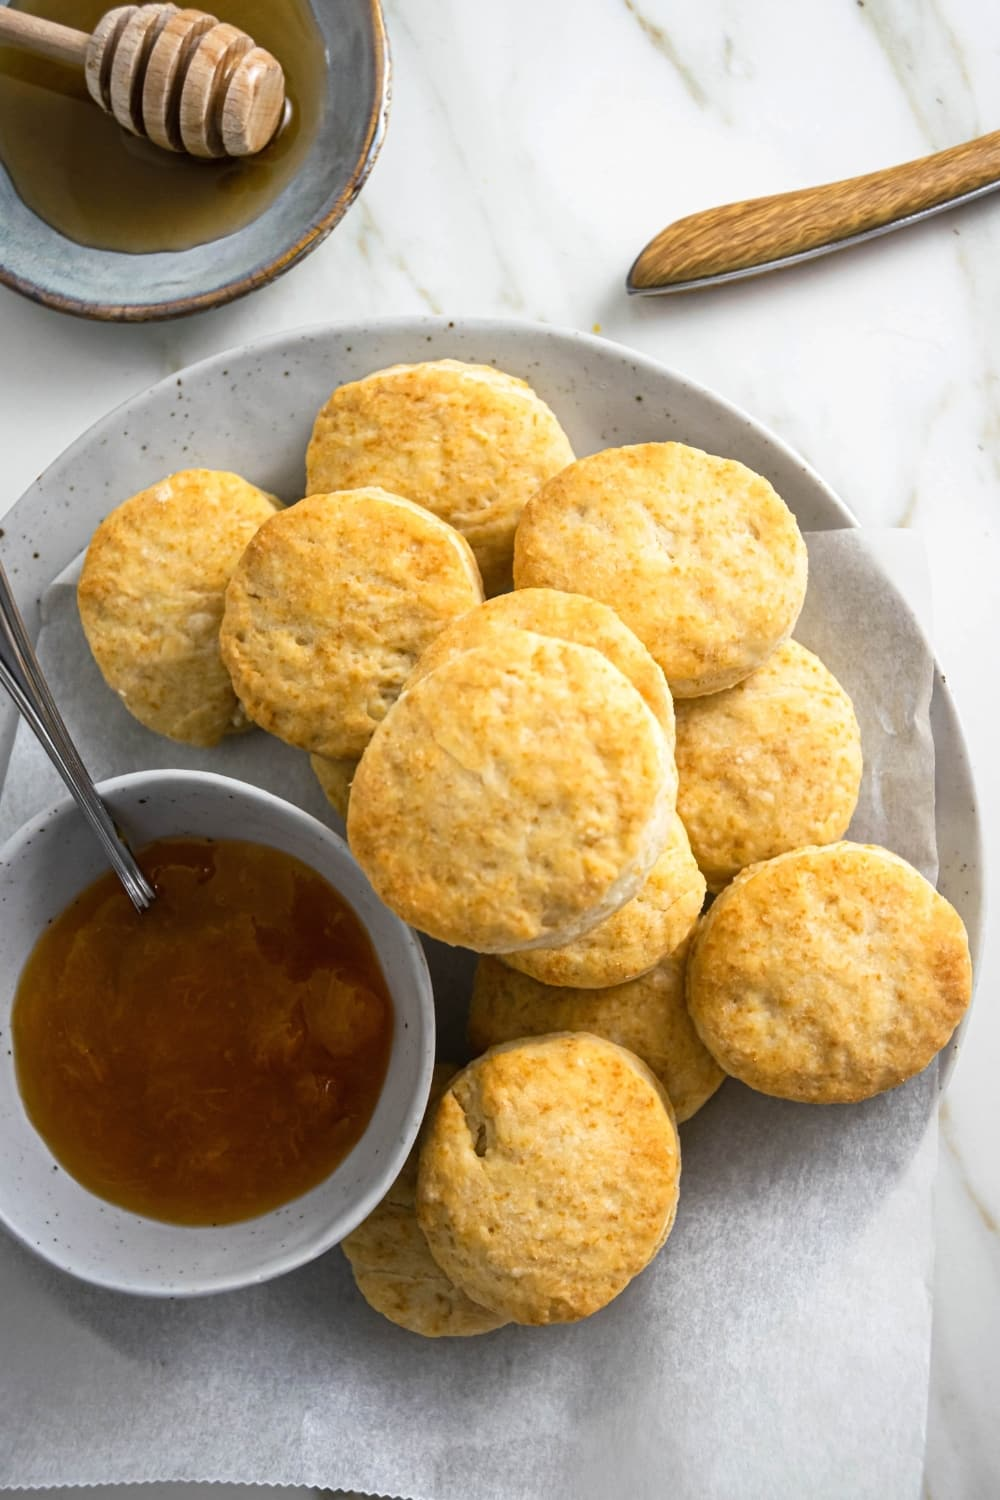 A bunch of biscuits and a piece of parchment paper on a gray plate. Next to the biscuits on the plate is a bowl with gravy with a spoon in it. Behind the plate is part of a bowl of honey. Everything is on a white counter.